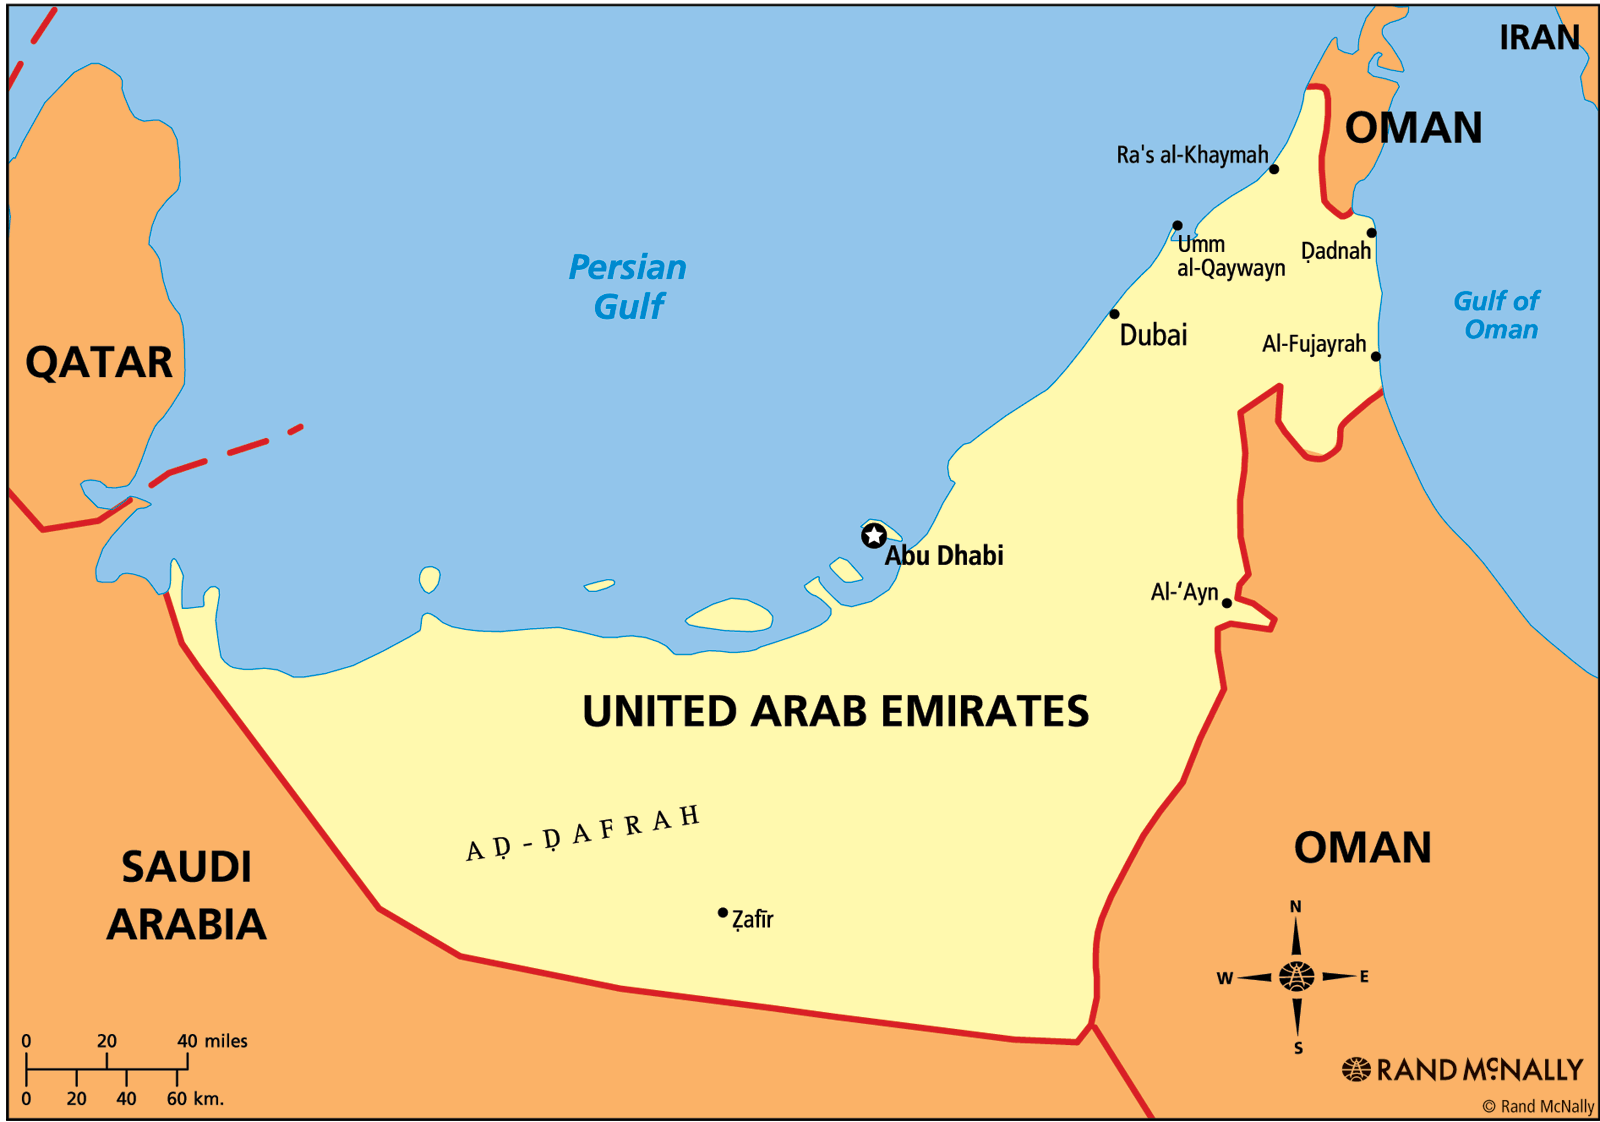 Image Map Of The United Arab Emirates Marvel Cinematic - United arab emirates map